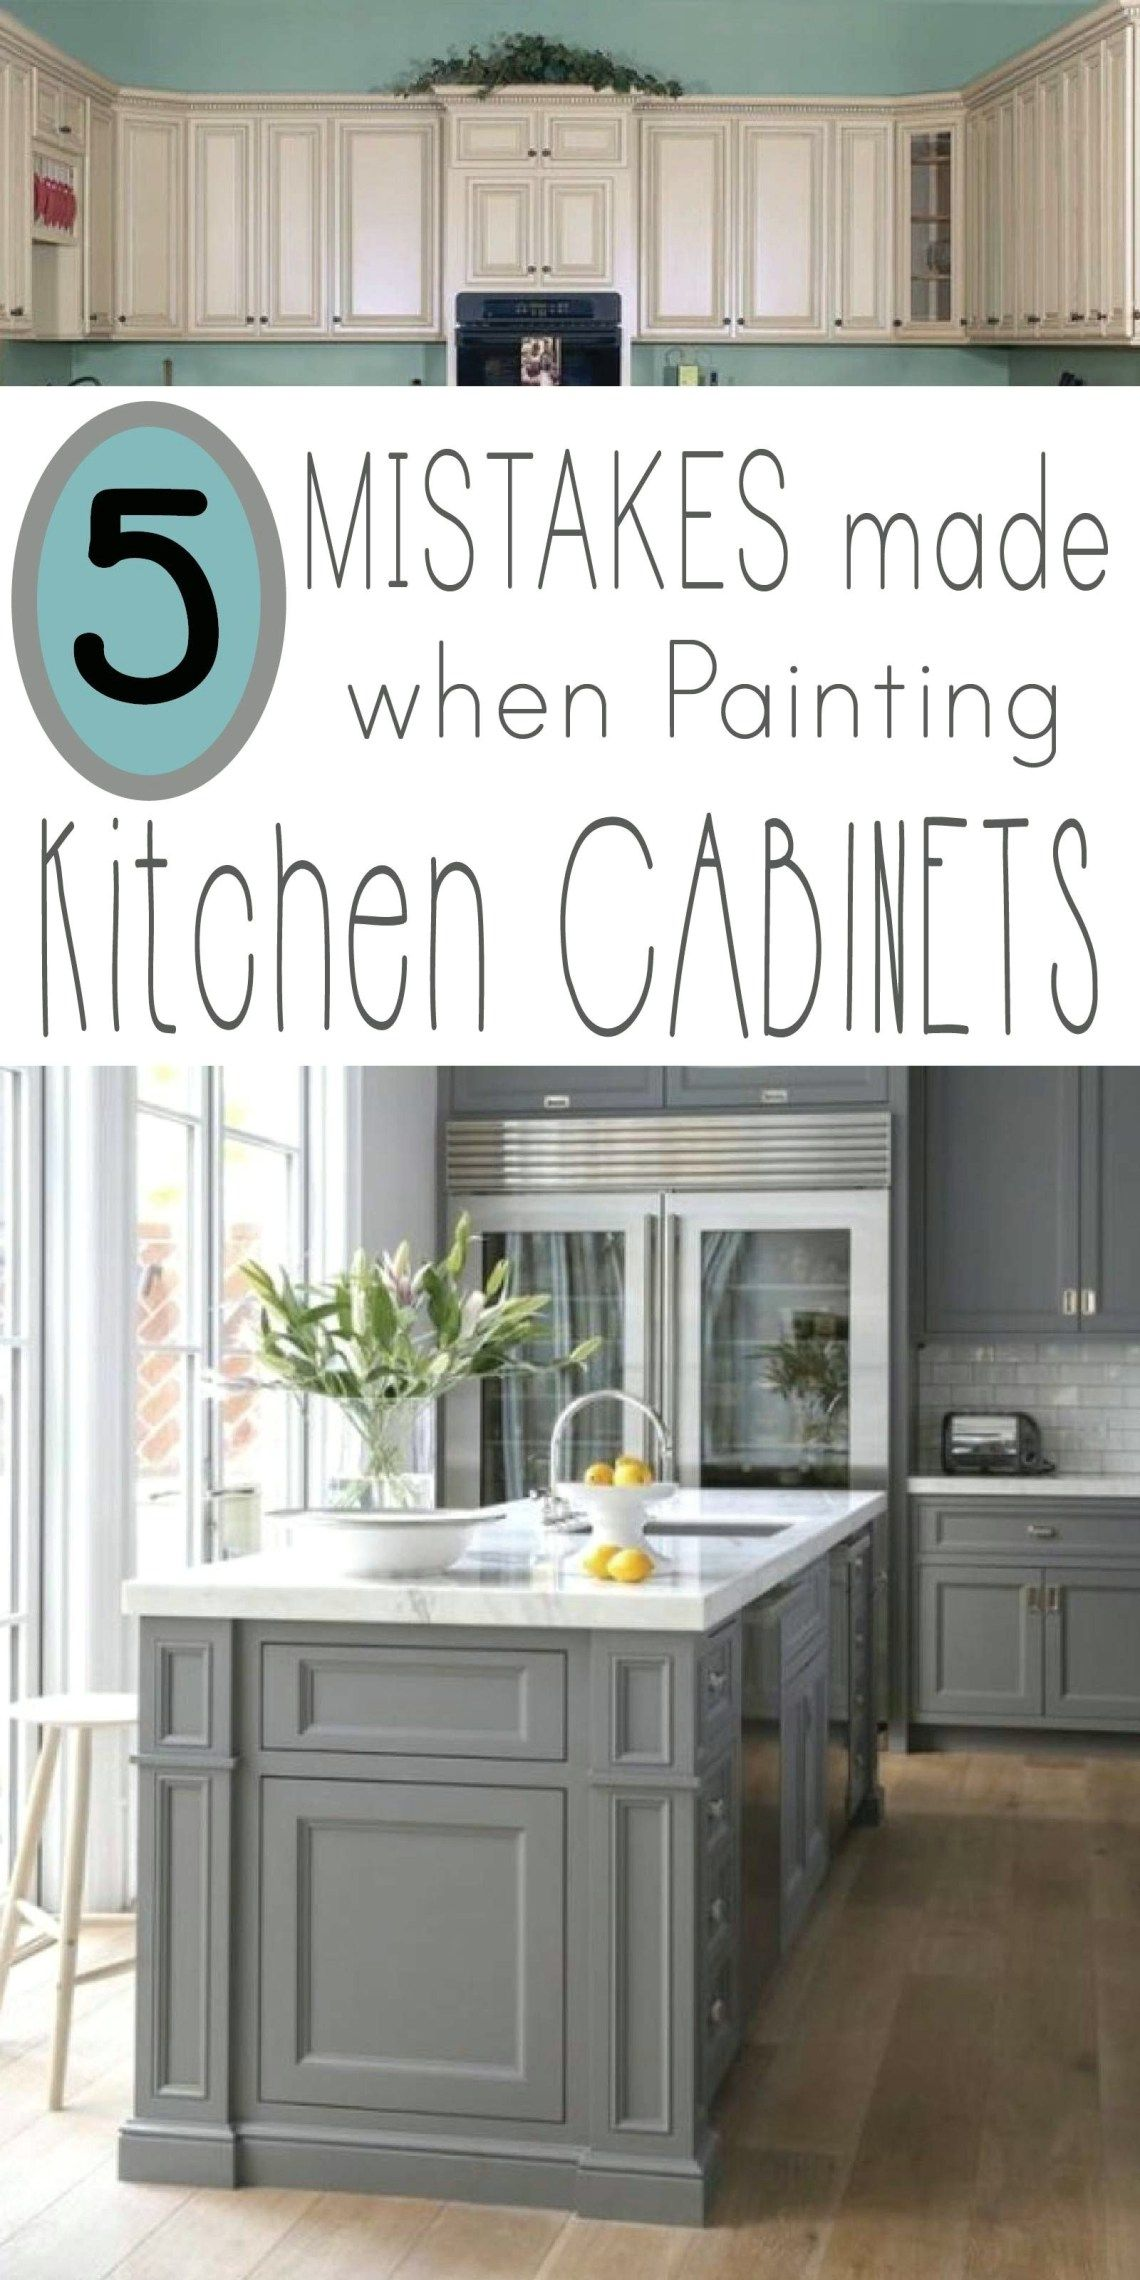 Average Cost To Replace Kitchen Cabinets And Countertops In 2020 Diy Kitchen Renovation Kitchen Renovation Kitchen Remodeling Projects